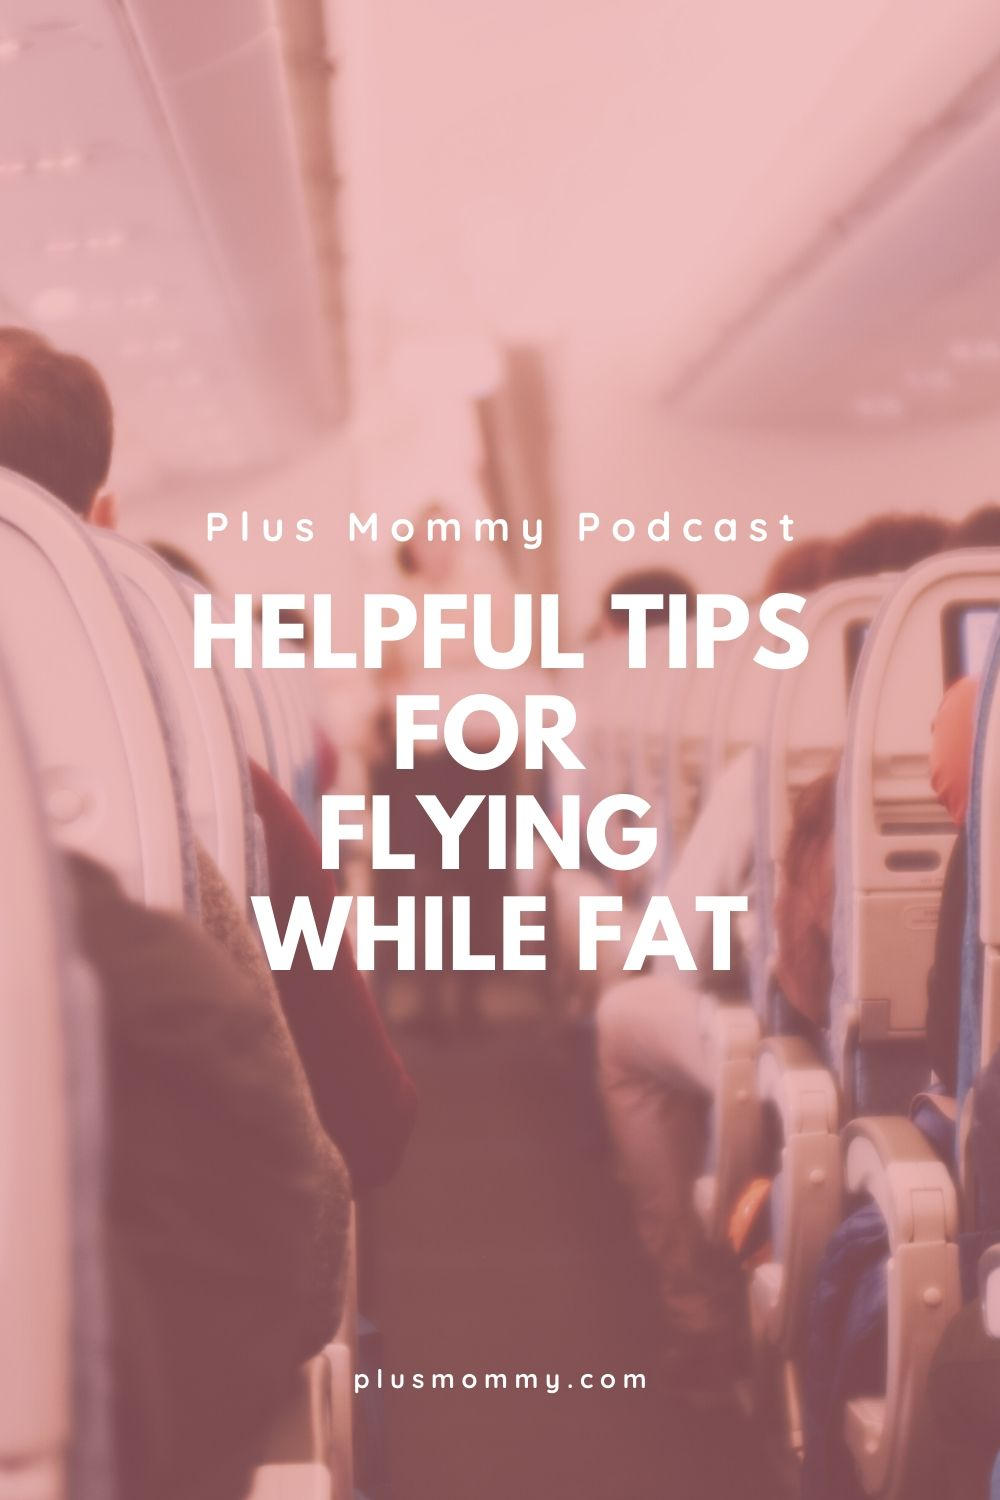 image text - helpful tips flying while fat